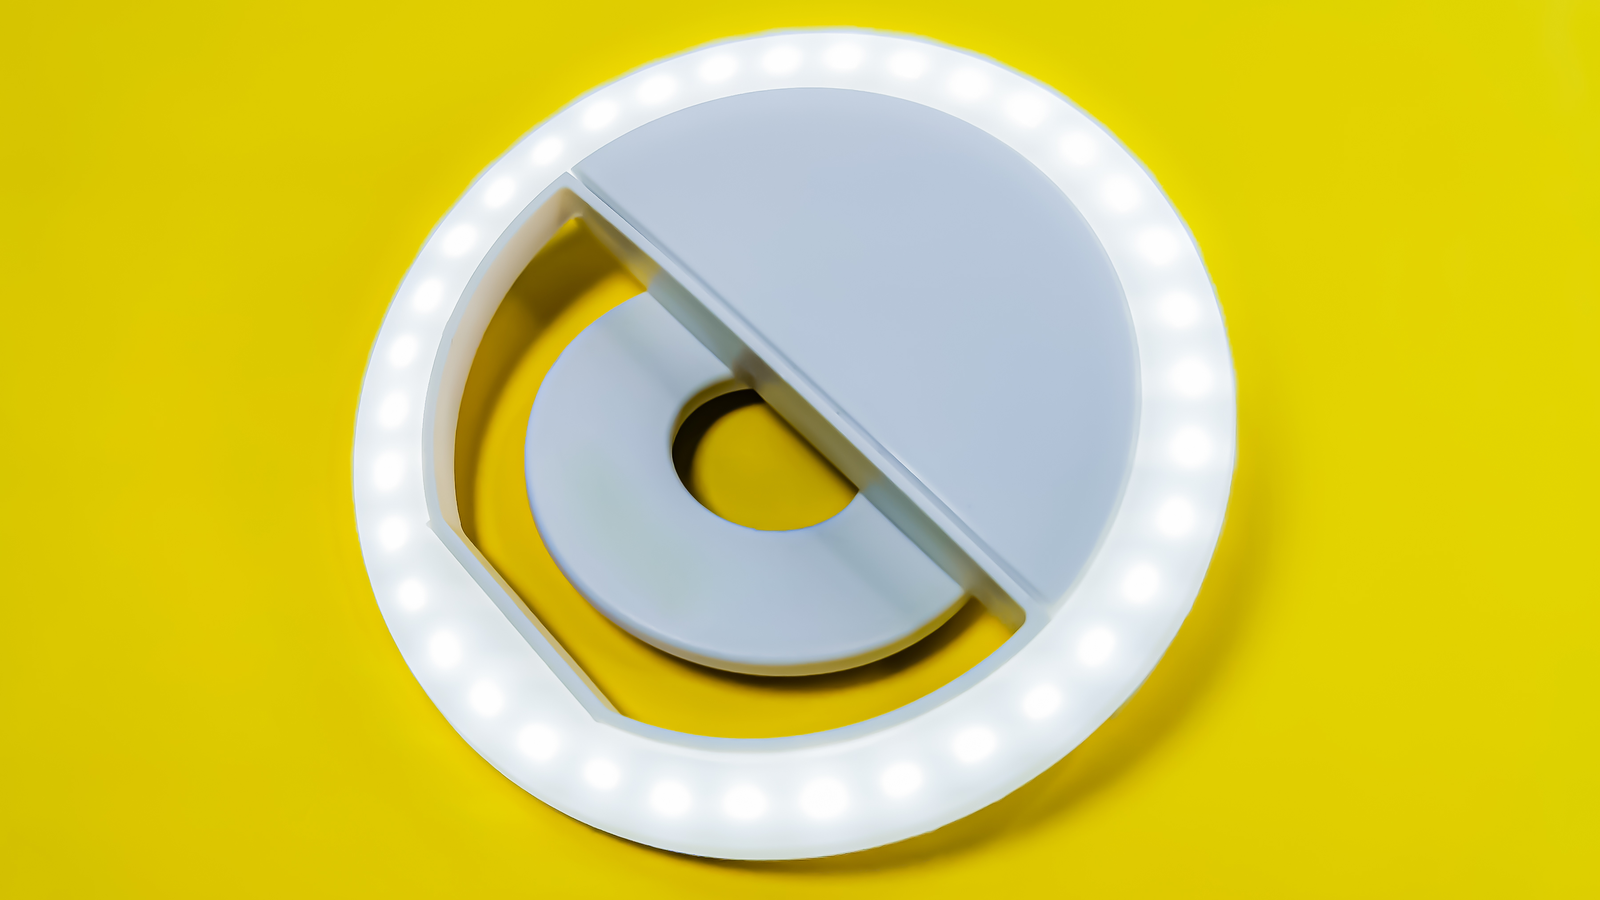 Close-up LED selfie circular ring light lamp for camera phone against bright yellow background